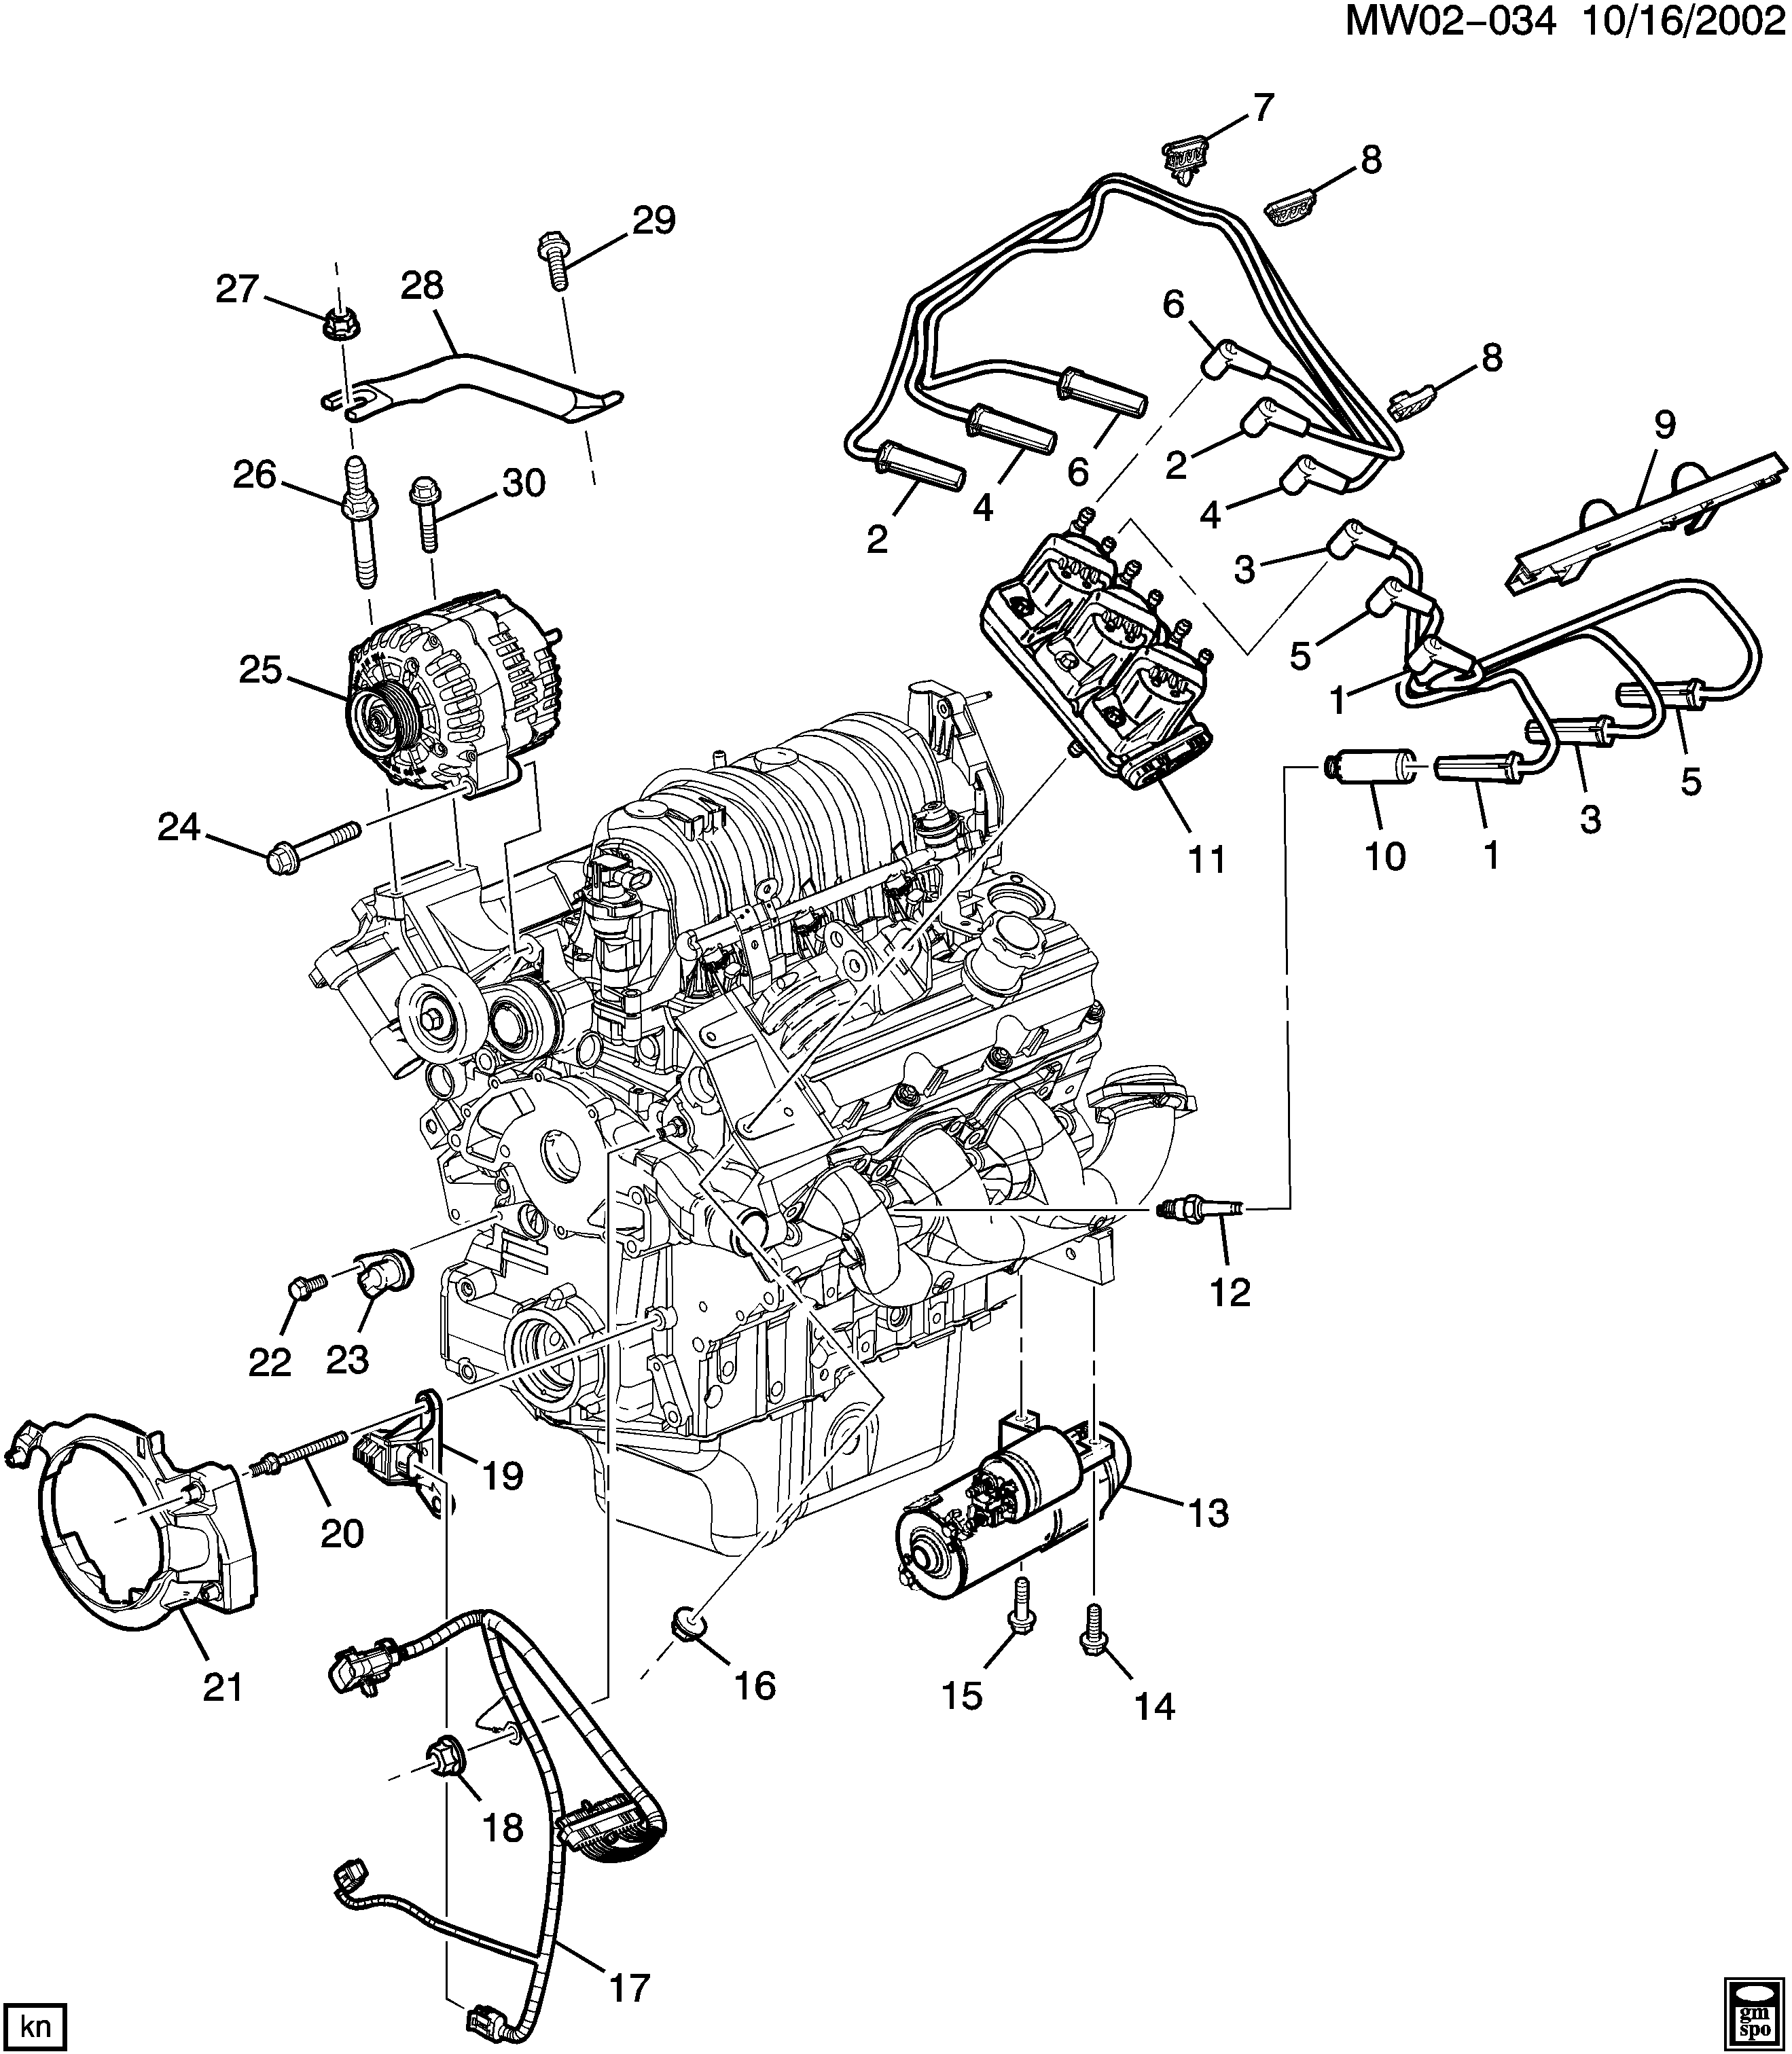 Gm 3800 Engine Diagram